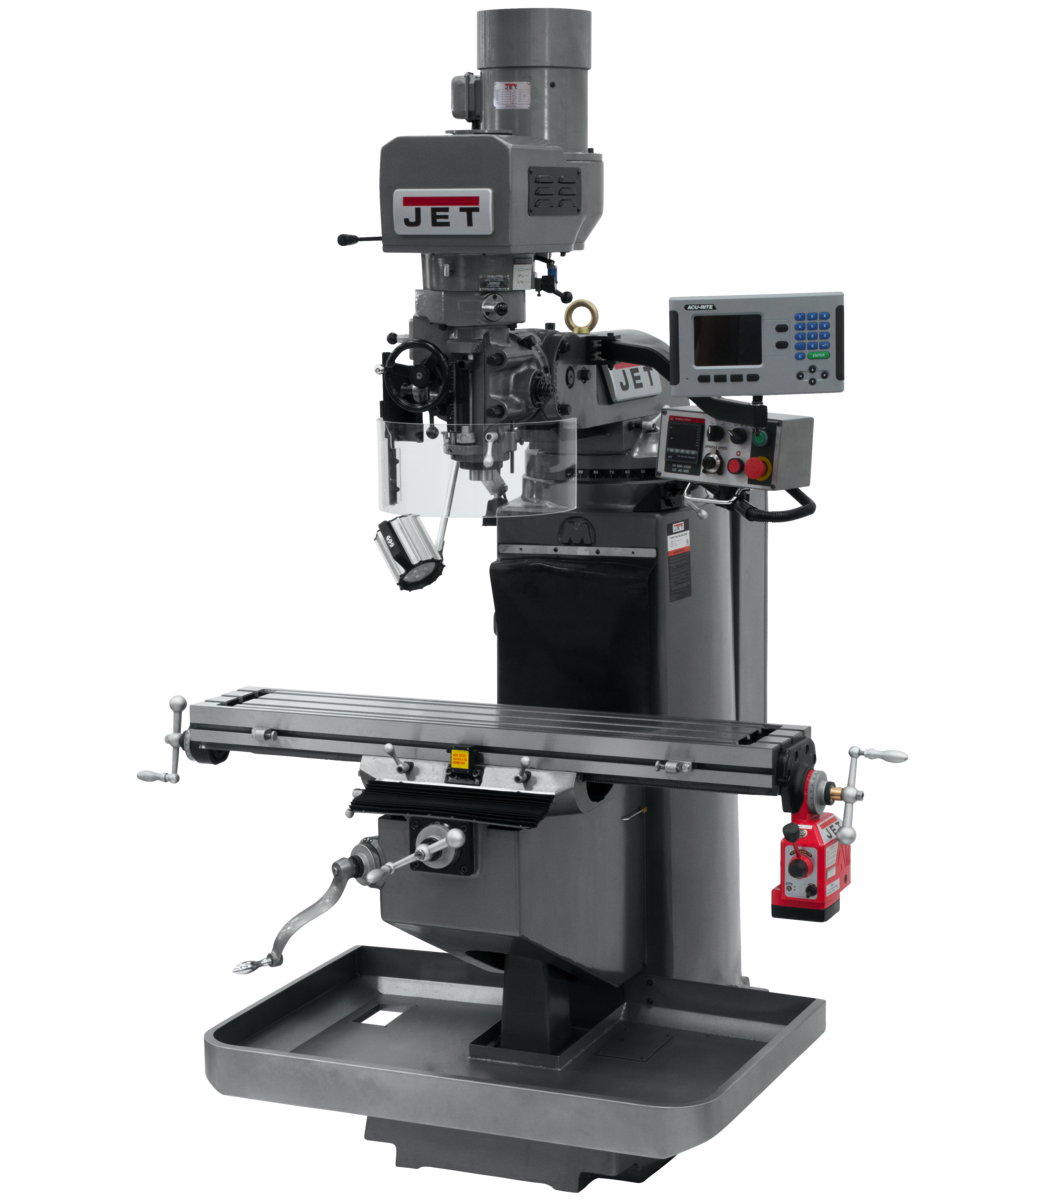 JTM-949EVS Mill With 3-Axis Acu-Rite 203 DRO (Quill) With X-Axis Powerfeed